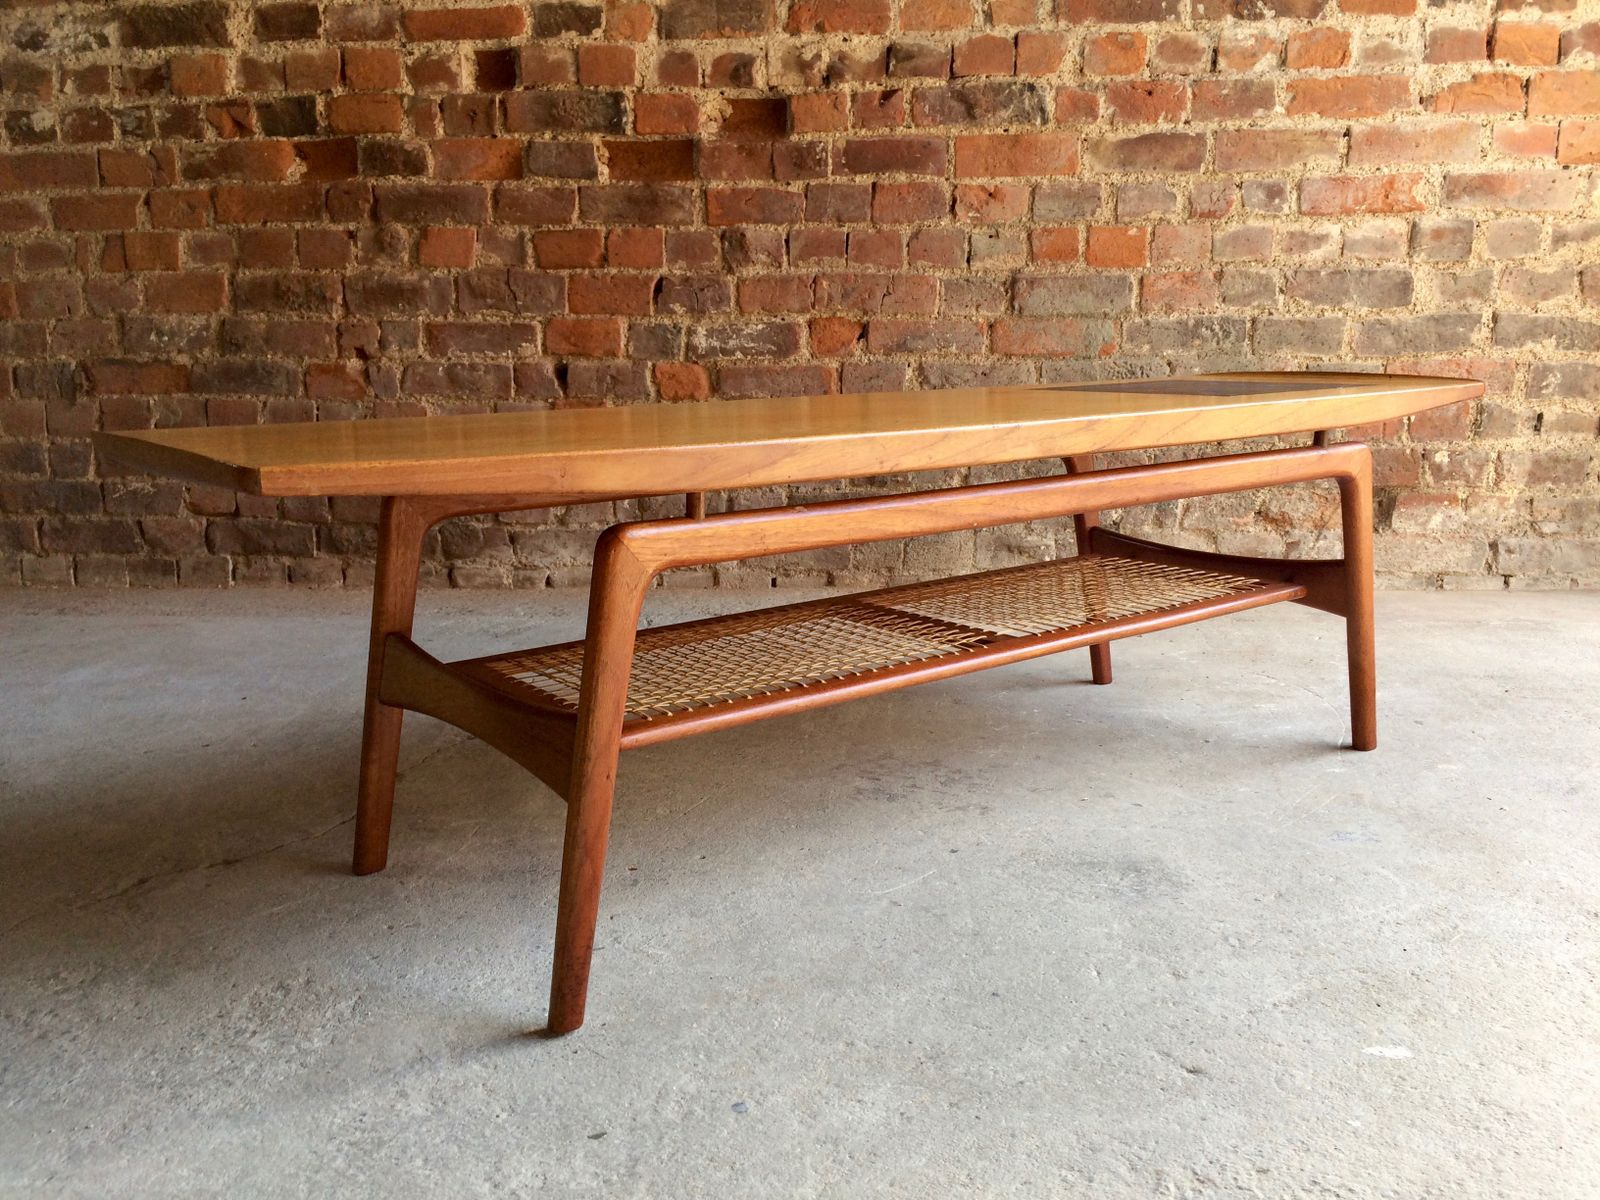 Teak Coffee Table By Arne Hovmand Olsen For Mogens Kold Mobelfabrik, 1950s